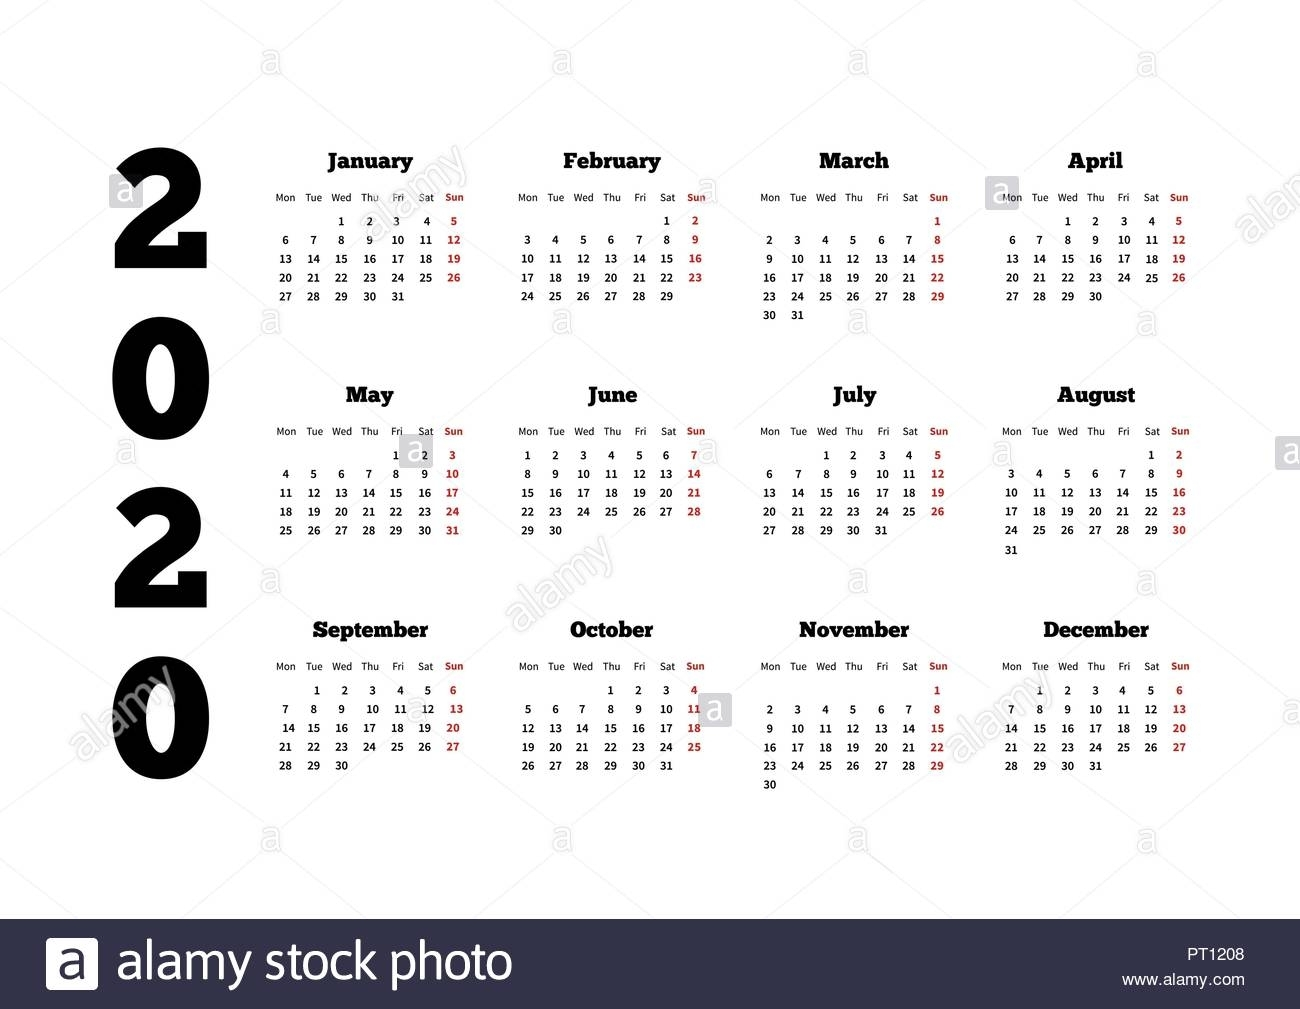 Calendar On 2020 Year With Week Starting From Monday, A4 Sheet Stock intended for 2020 Calendar Starting With Monday